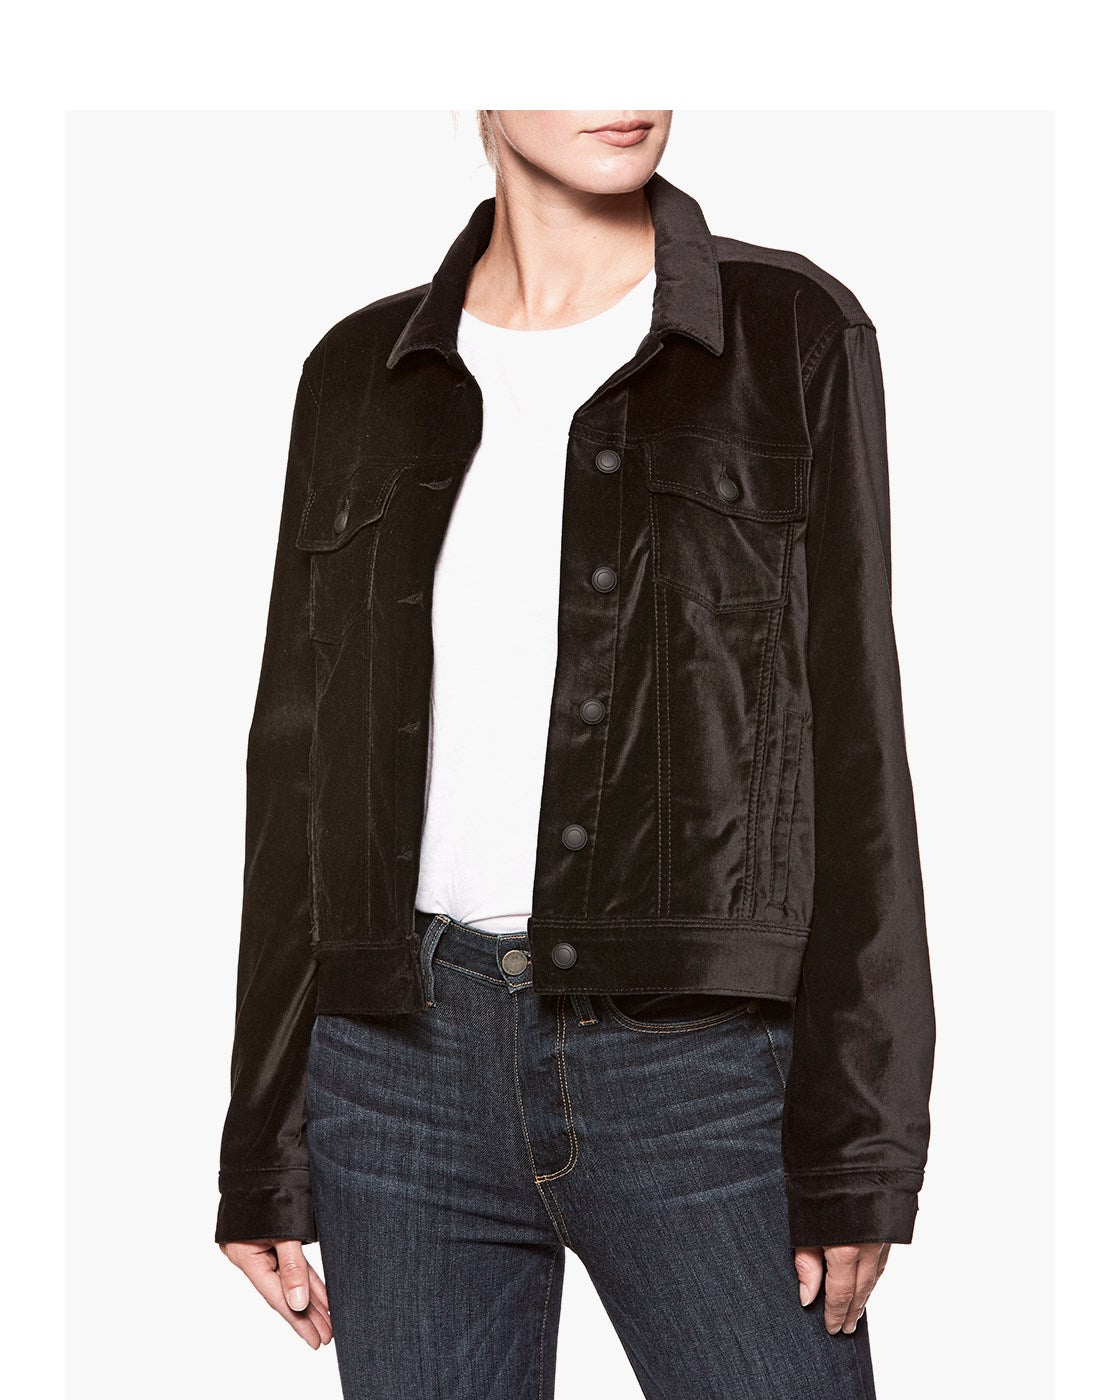 Rowan Jacket - Black Velvet